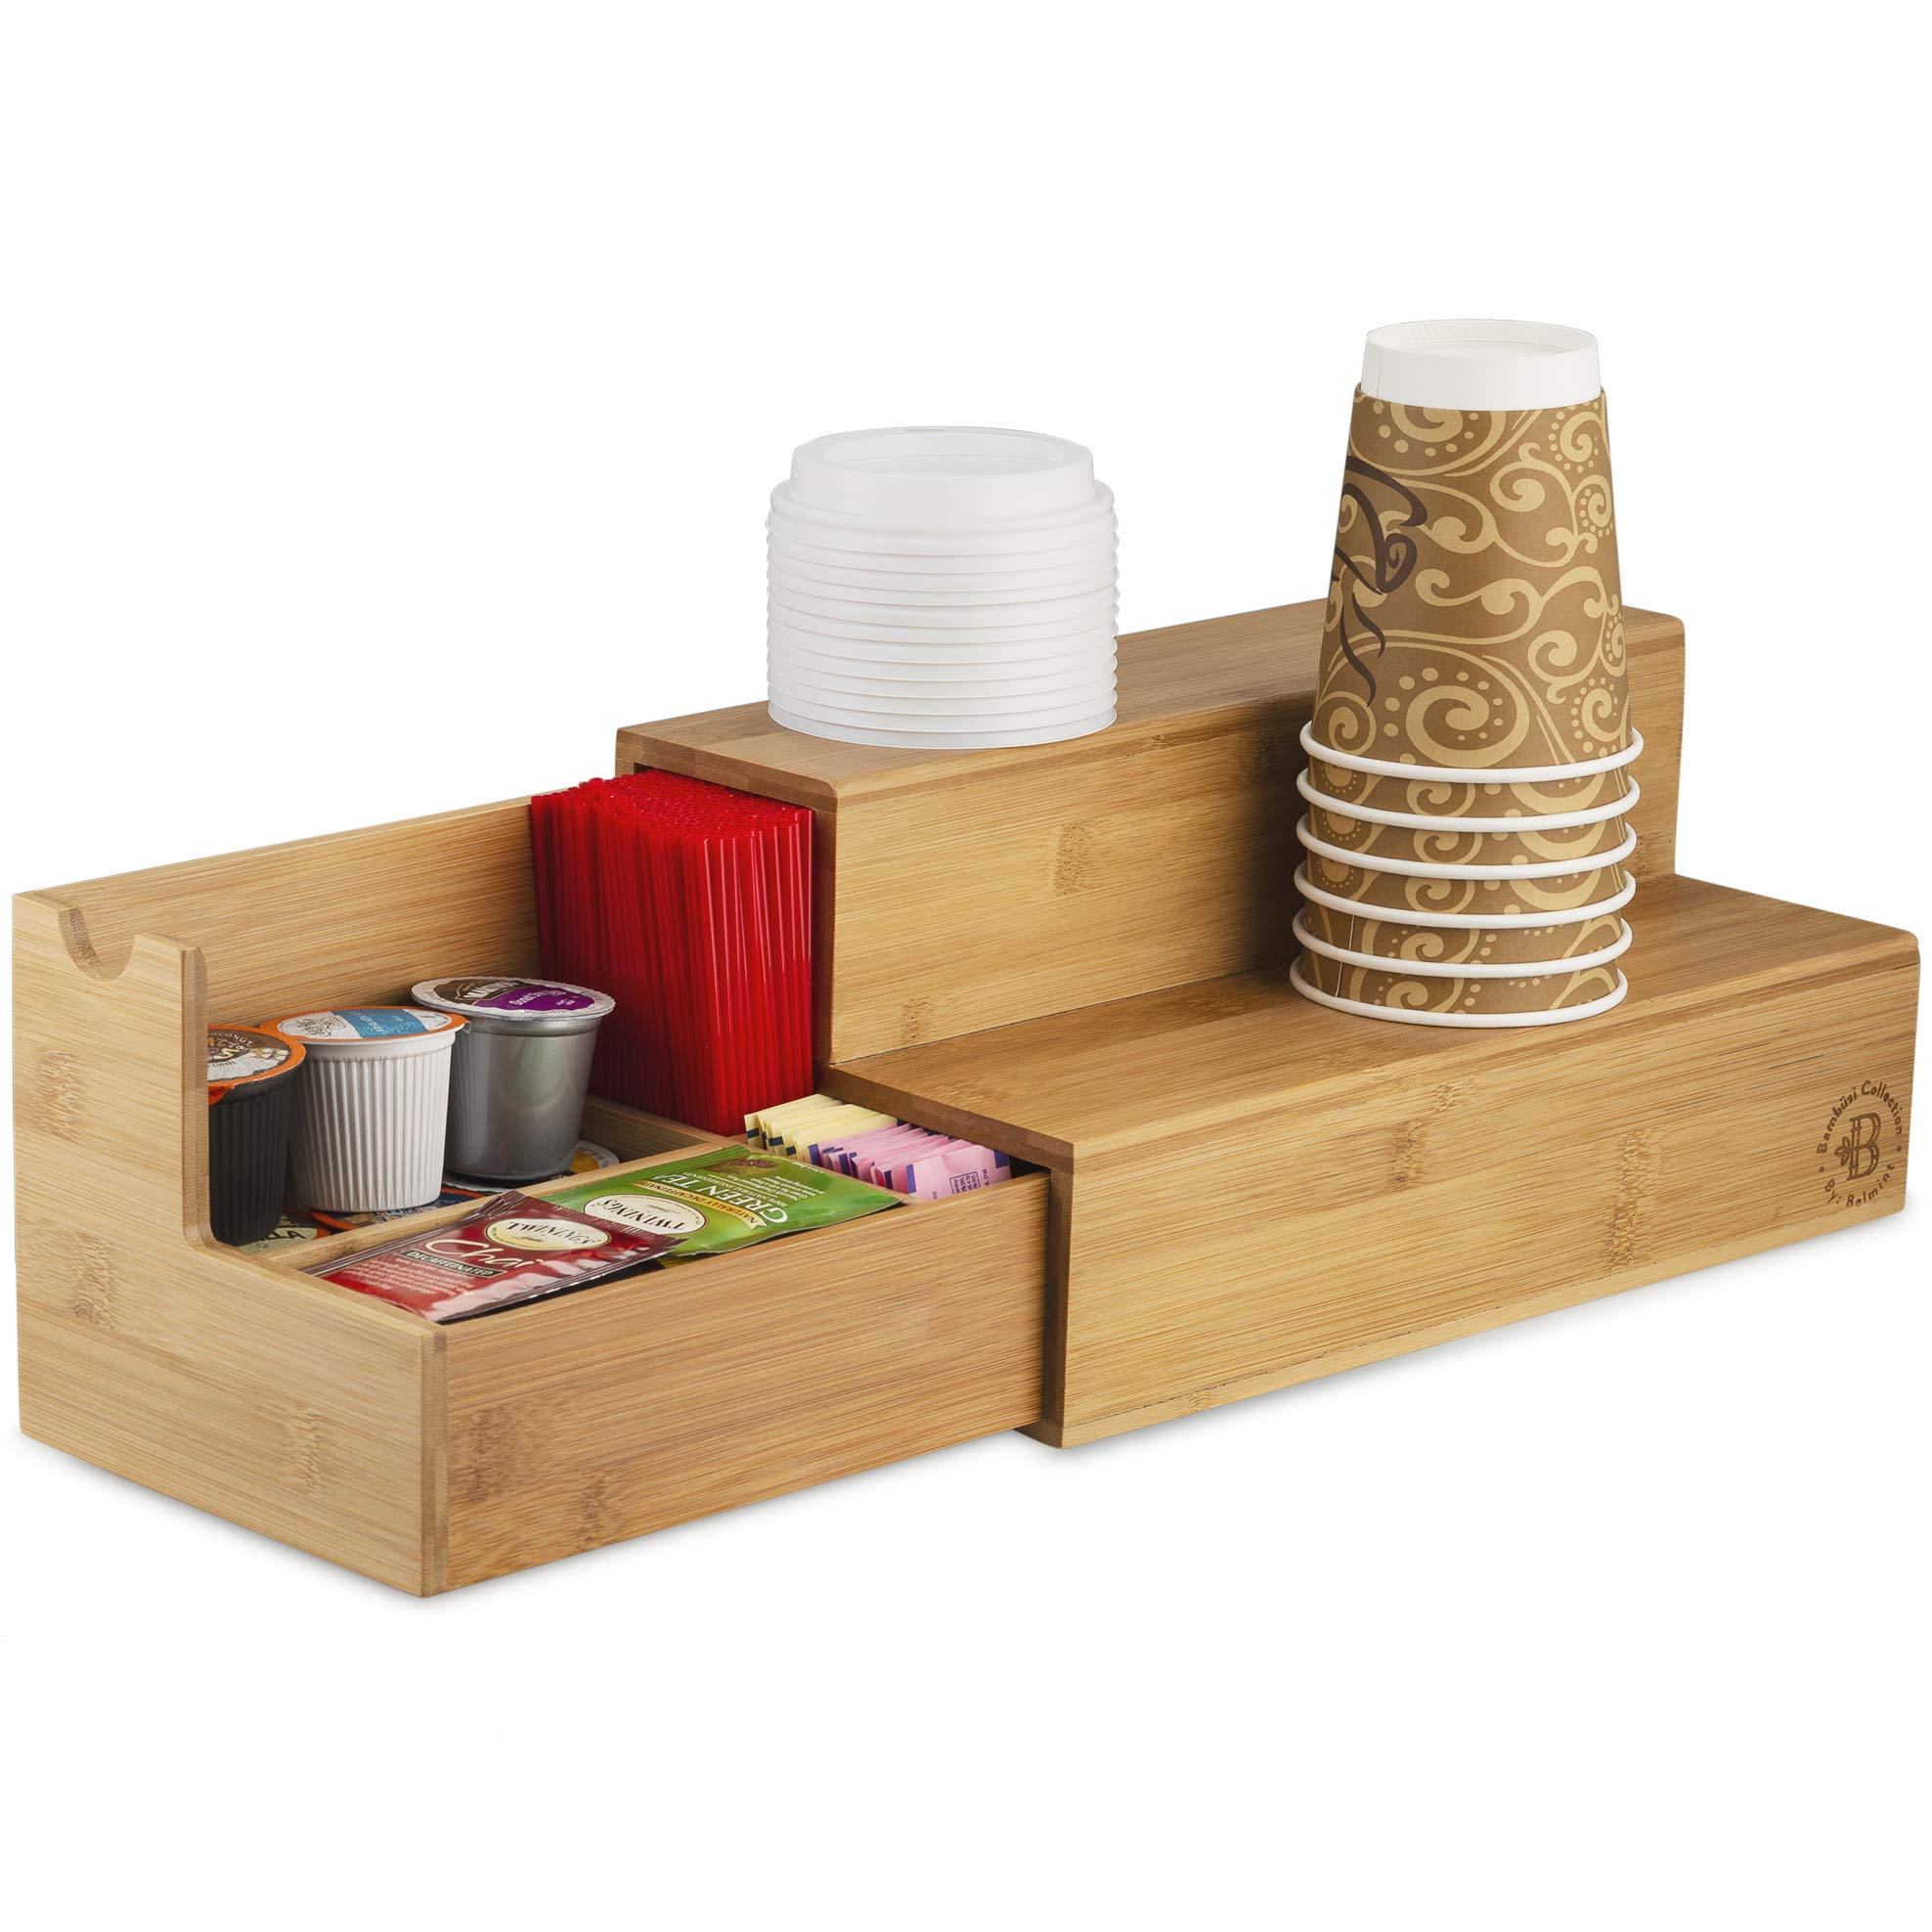 Coffee Tea Organizer Station - Bamboo Condiment and Accessories Caddy Organizer | for Kitchen and Office Organization by Bambüsi (Image #1)